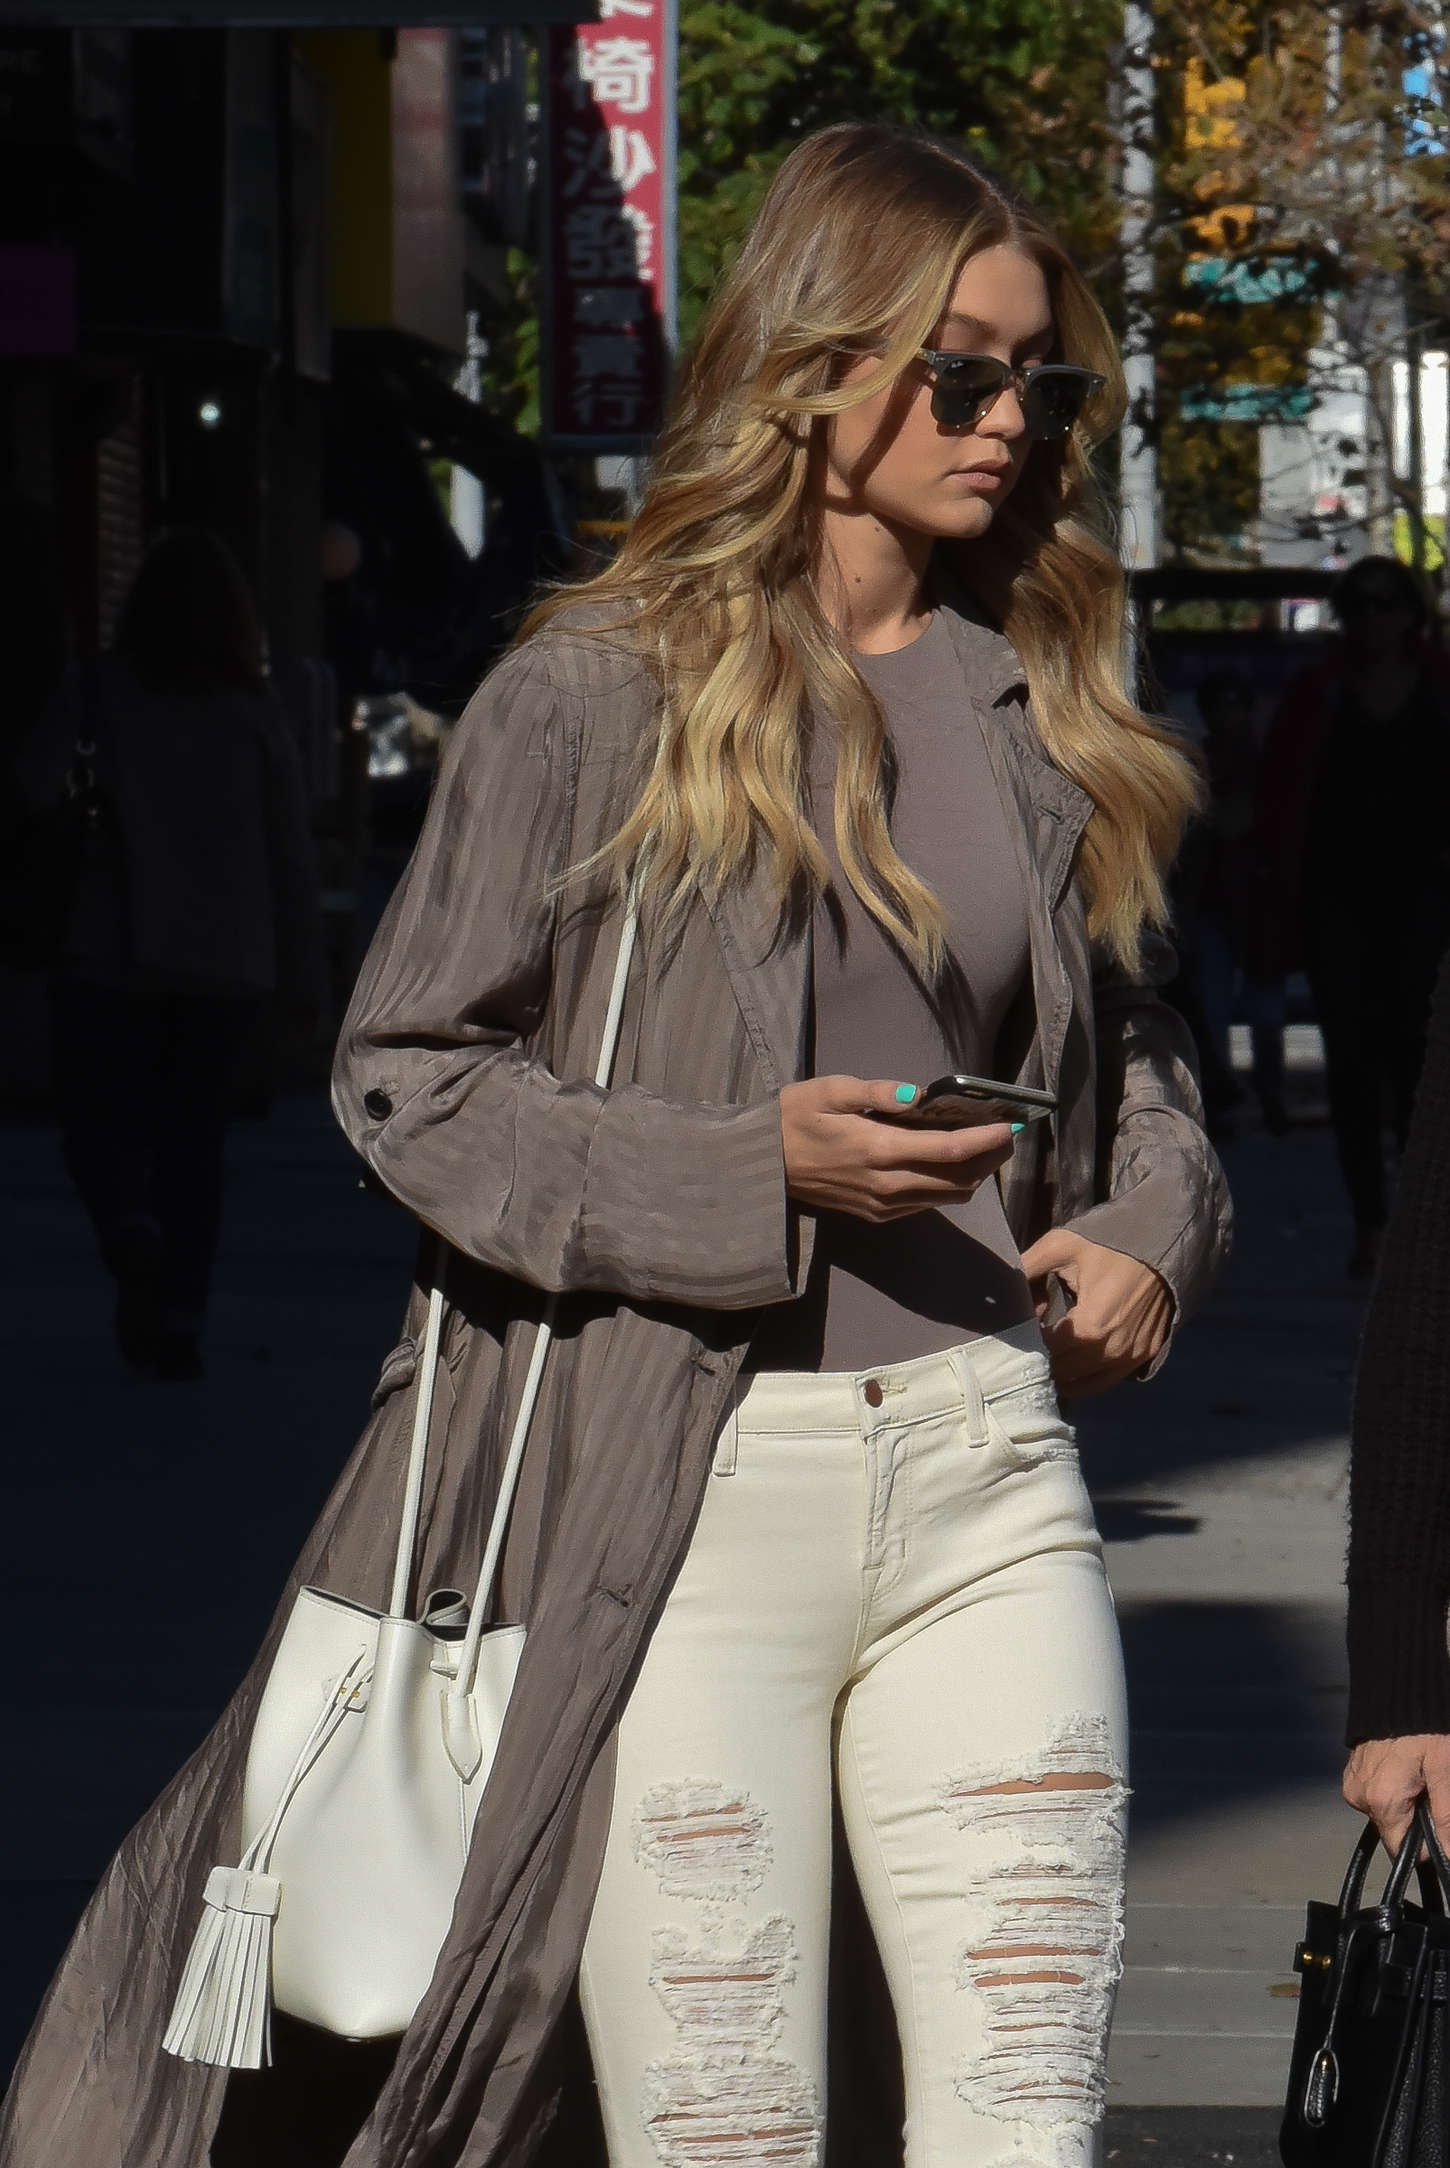 Gigi Hadid in Ripped Jeans out in New York